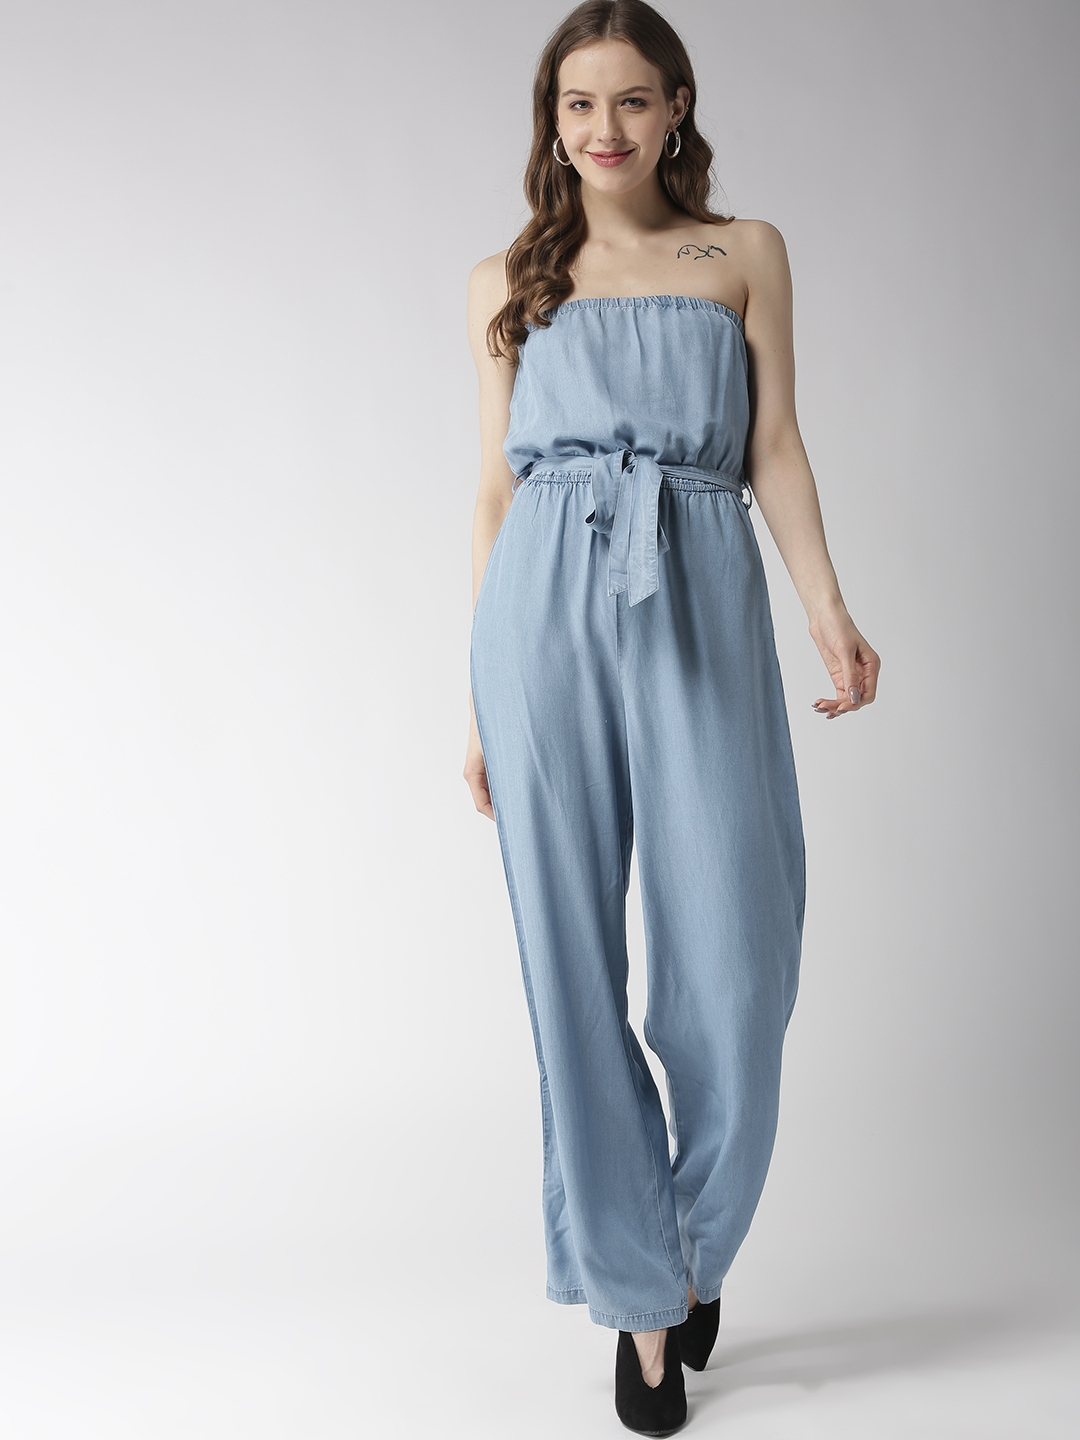 9d25497f9a12 Buy FOREVER 21 Blue Solid Chambray Tube Basic Jumpsuit - Jumpsuit ...